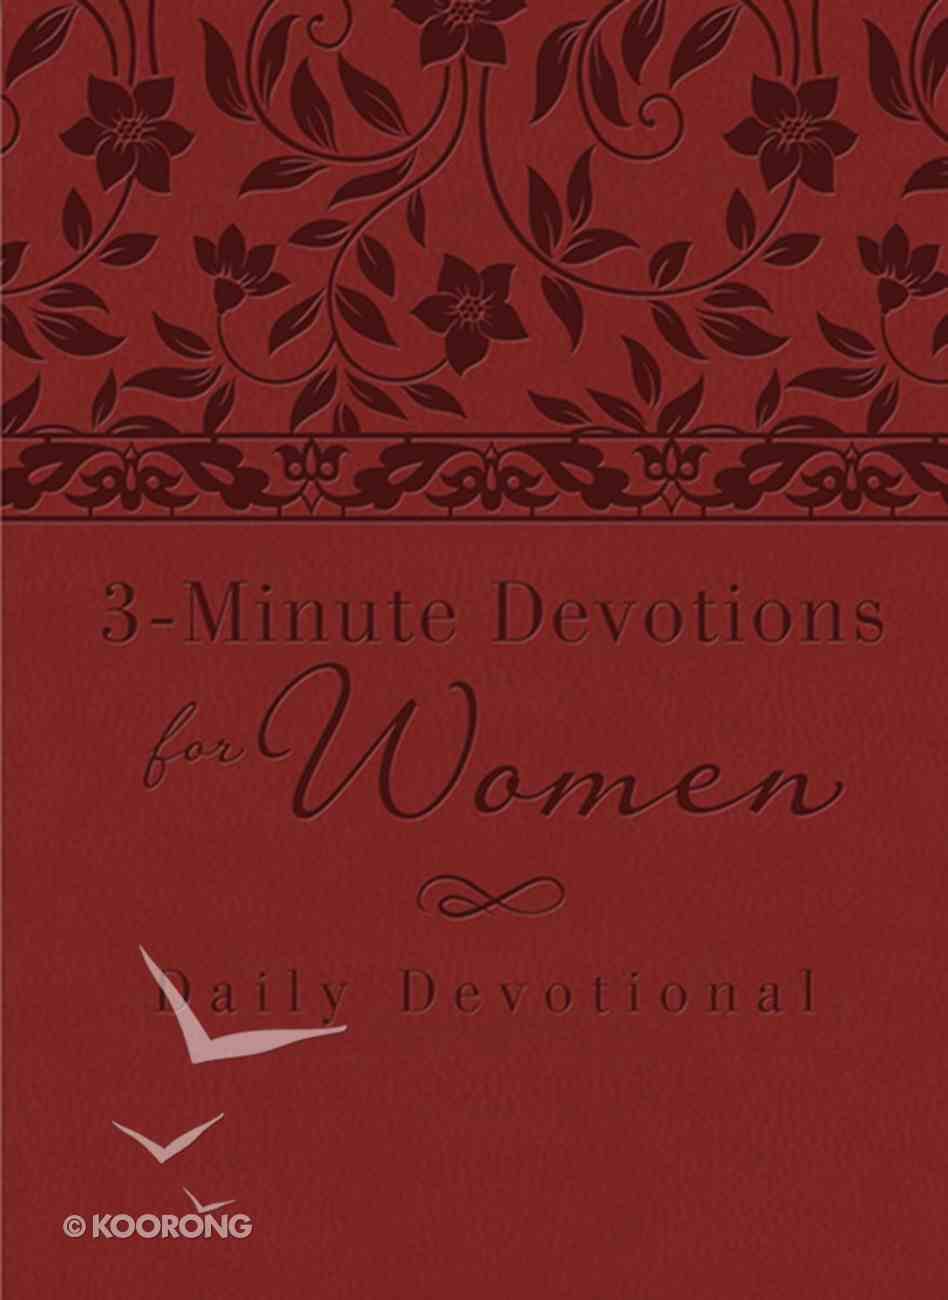 3-Minute Devotions For Women: Daily Devotional (Burgundy) eBook